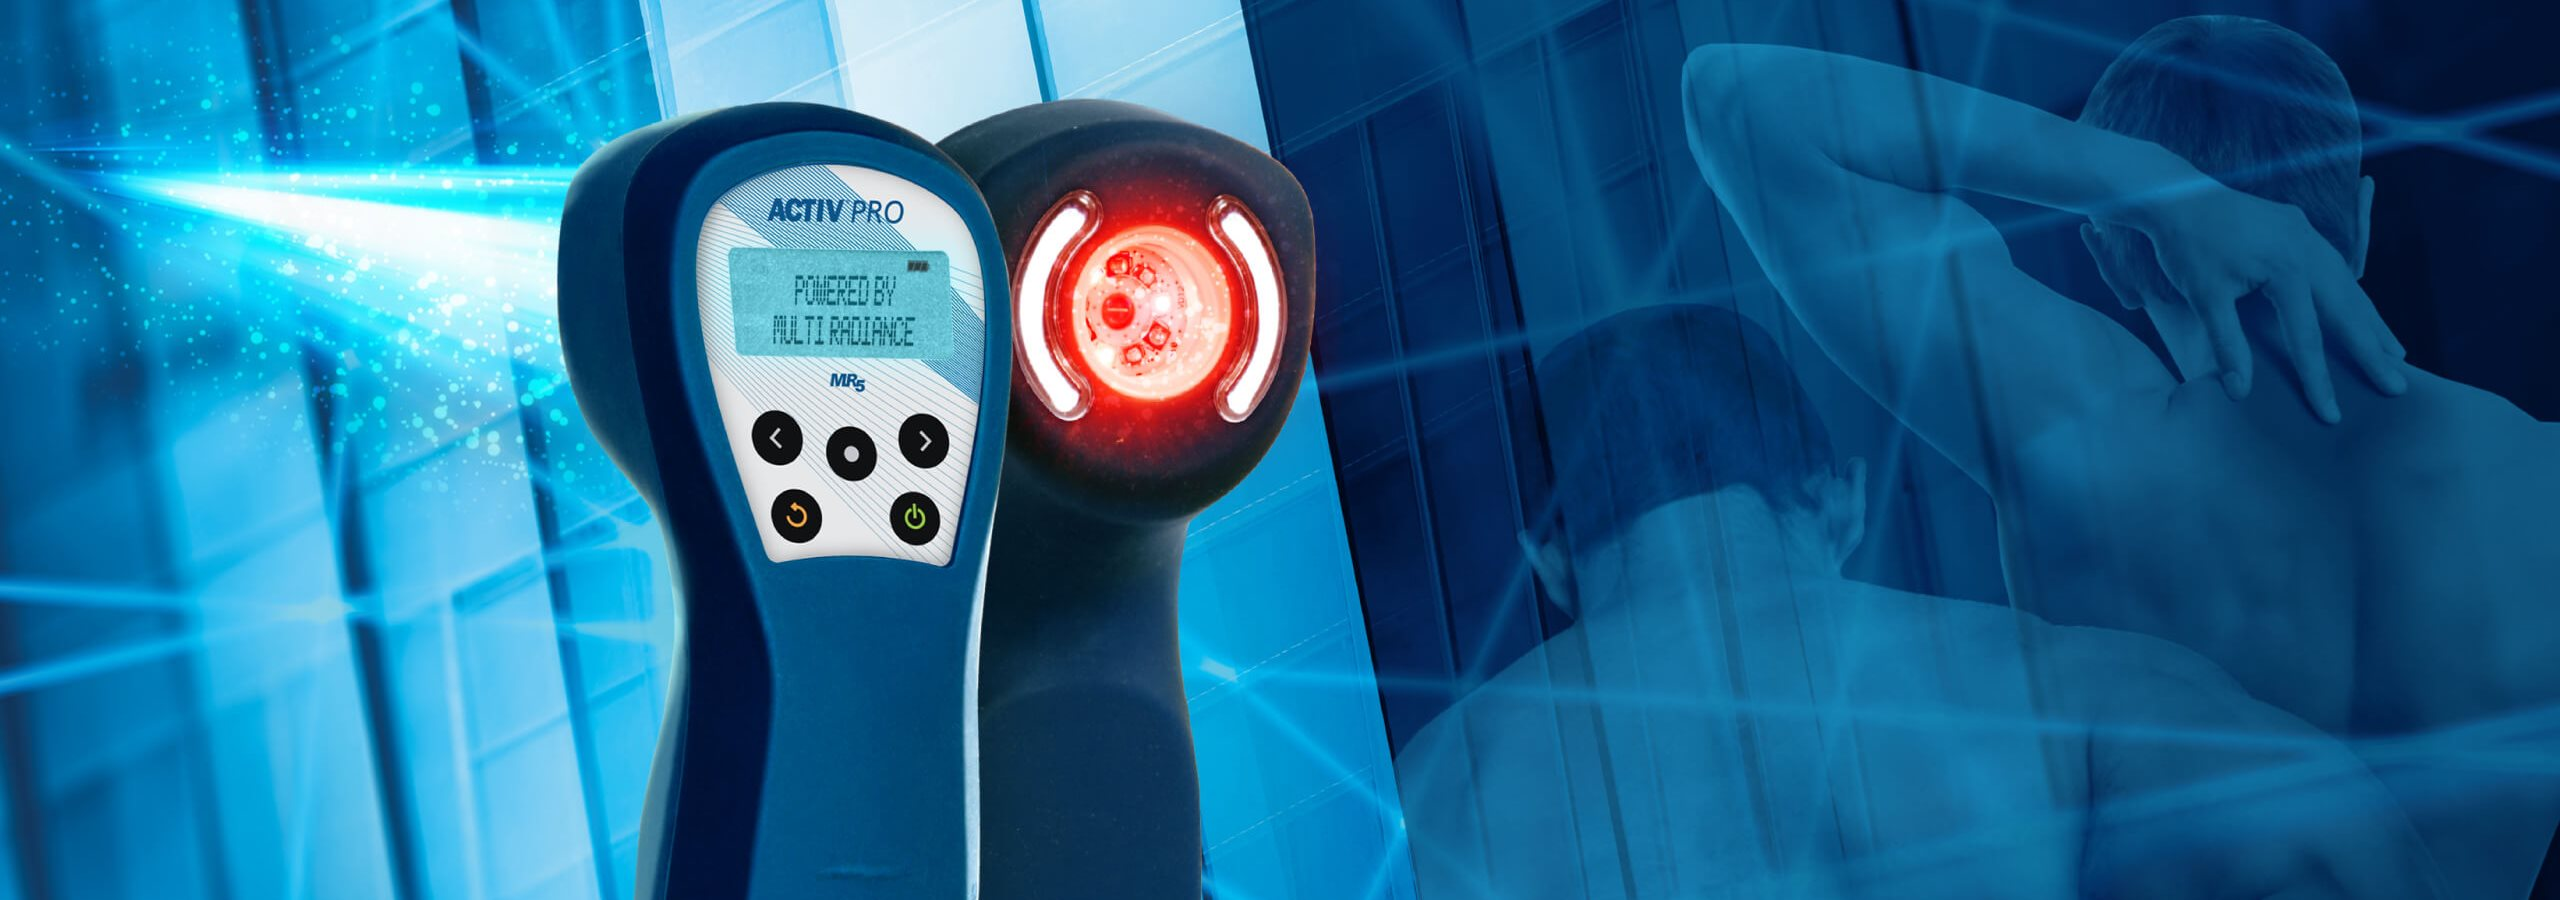 The NEW Activ PRO and Activ PRO LaserStim